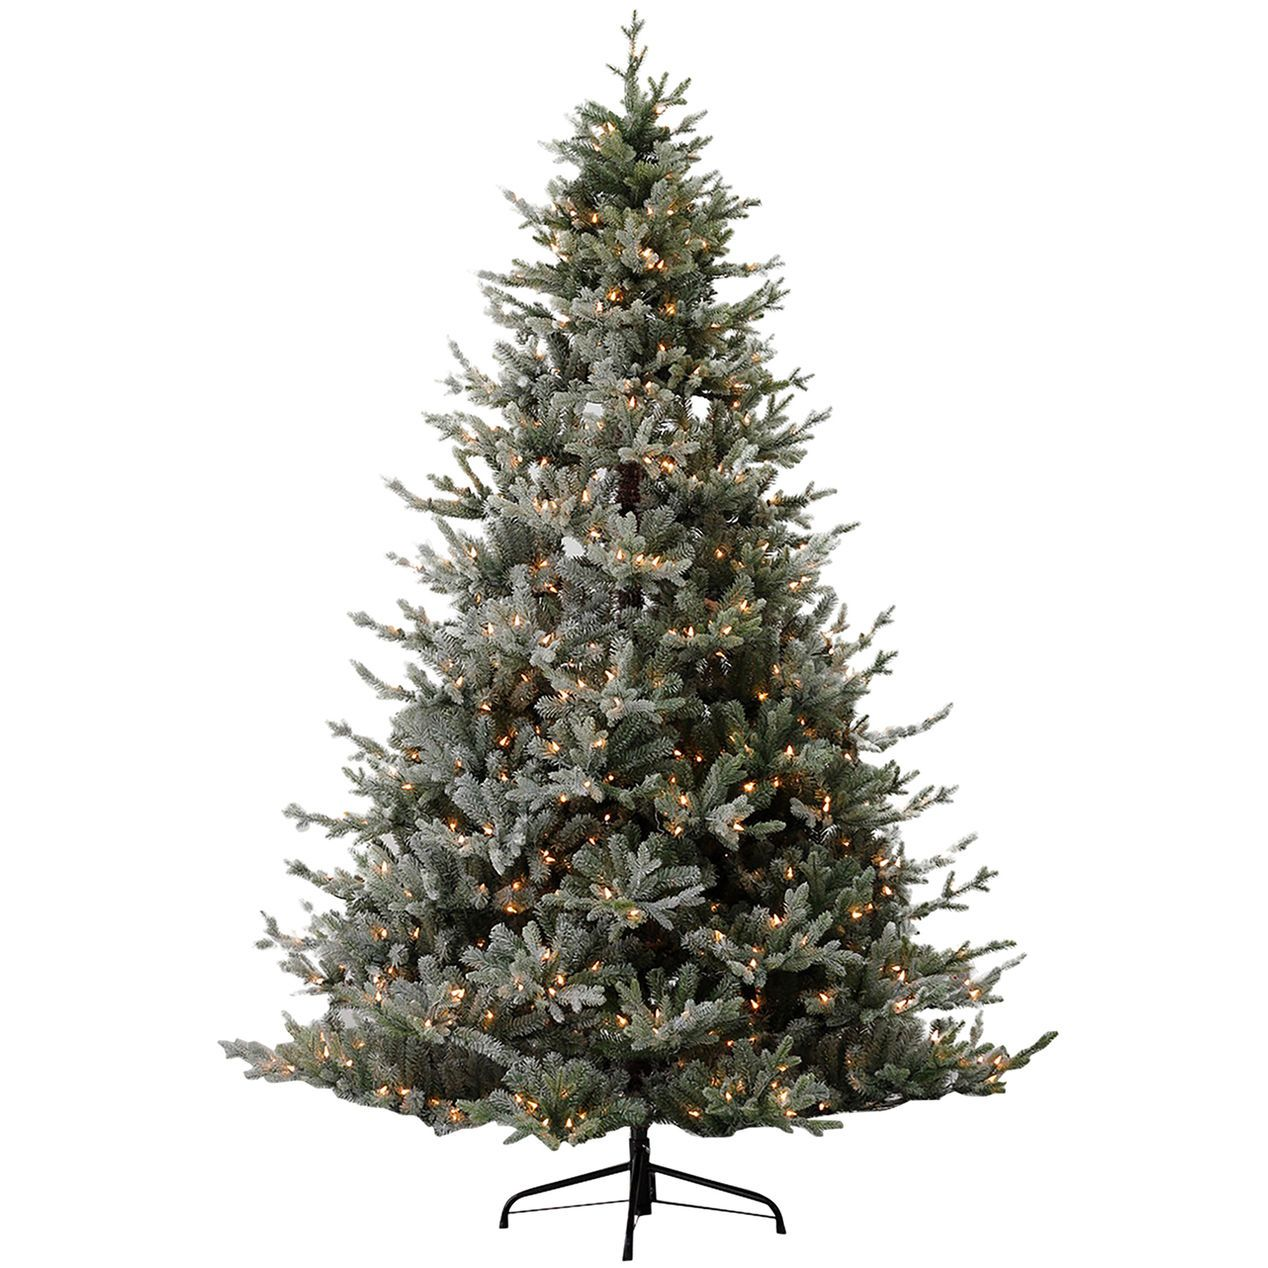 D23 7 5ft Pre Lit Clarence Frosted Christmas Tree At Home Best Artificial Christmas Trees Christmas Tree Frosted Christmas Tree